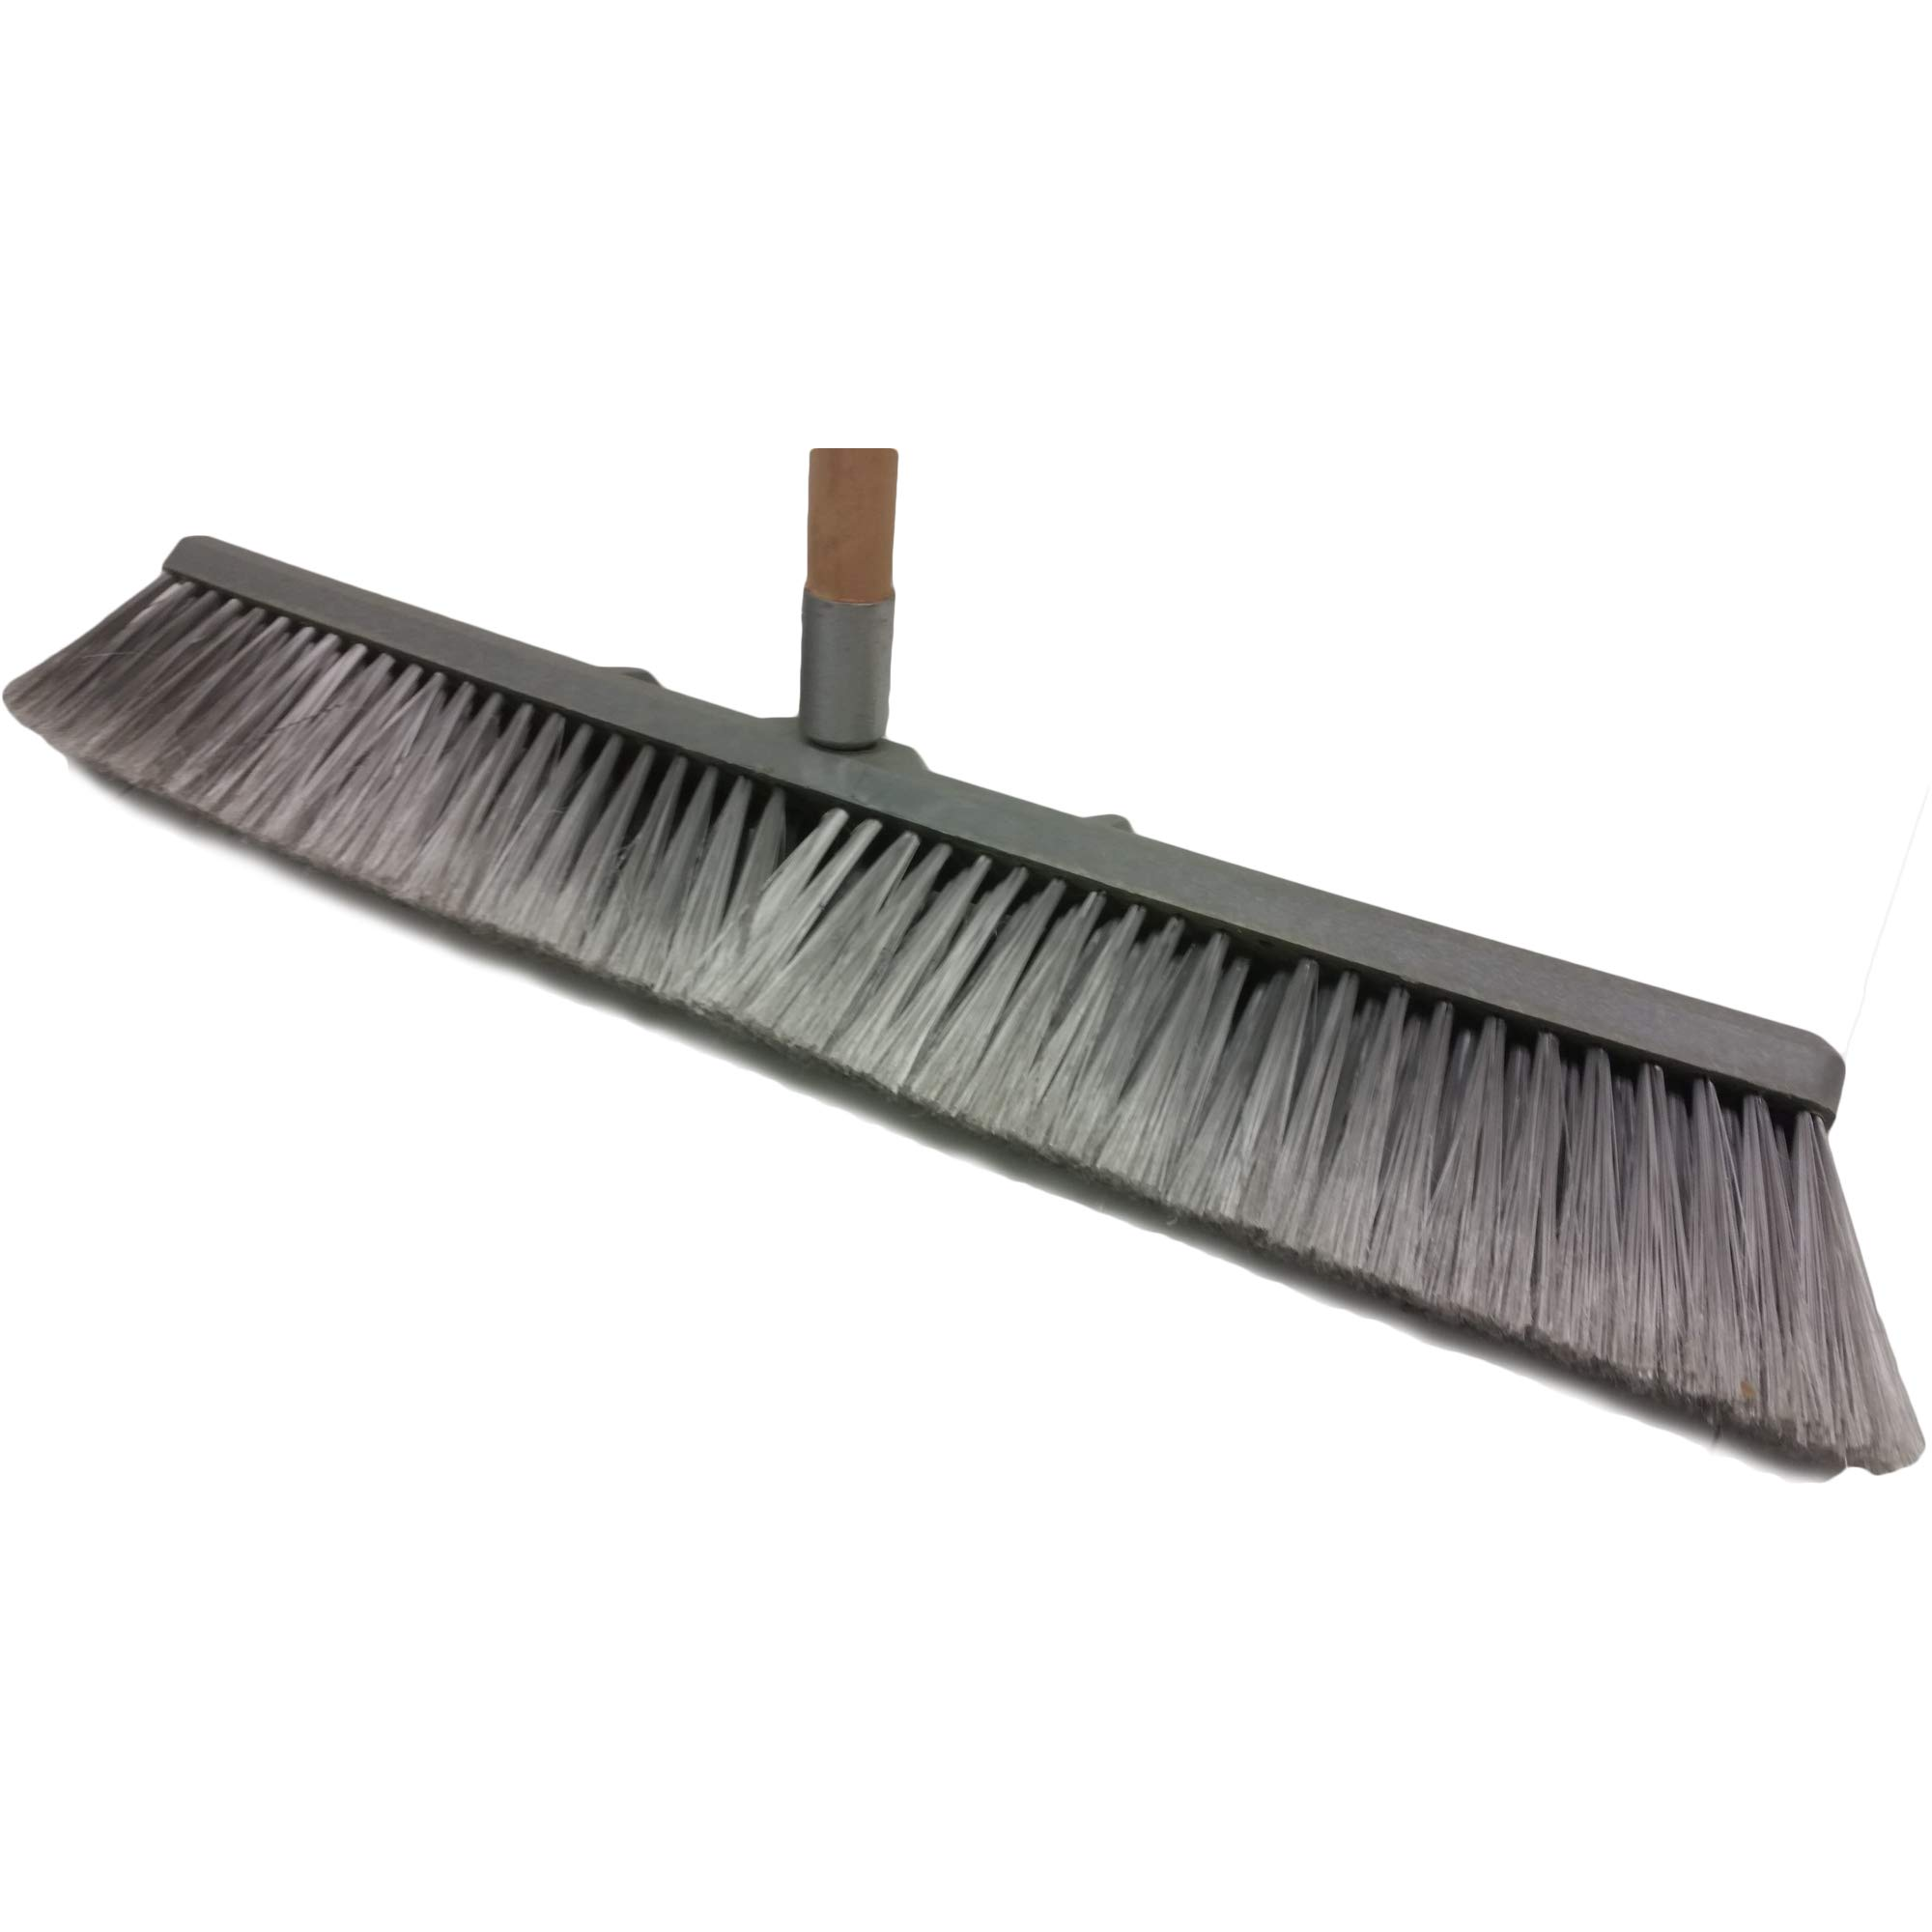 Professional Commercial Multi Surface Heavy Duty Industrial Push Broom Rough Surface Sweeper Brush With Stiff Bristles & Steel Wire Insert Warehouse & Contractors, Lawn & Garden, Indoor&Outdoor (Gray) by Unique Imports (Image #7)